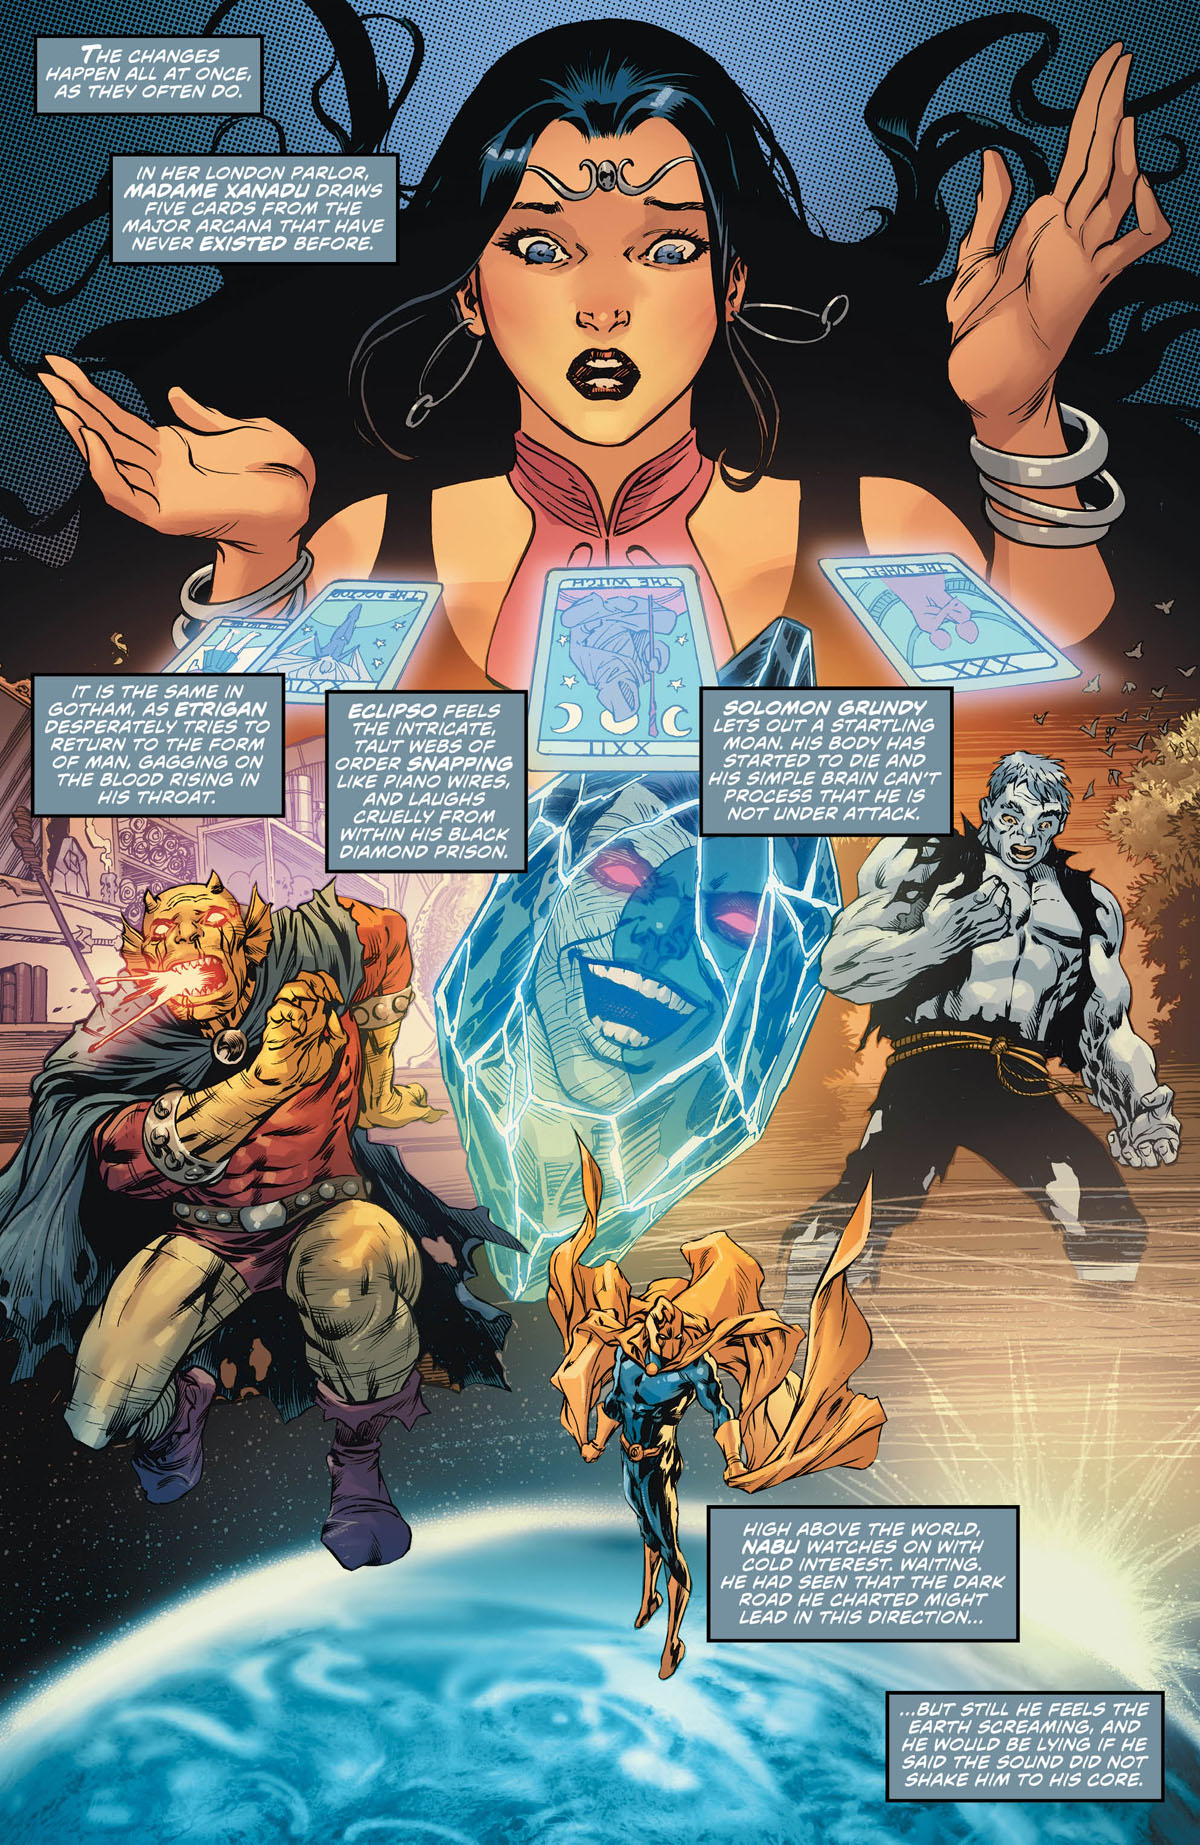 justice-league-dark-wonder-woman-the-witching-hour-1-page-1